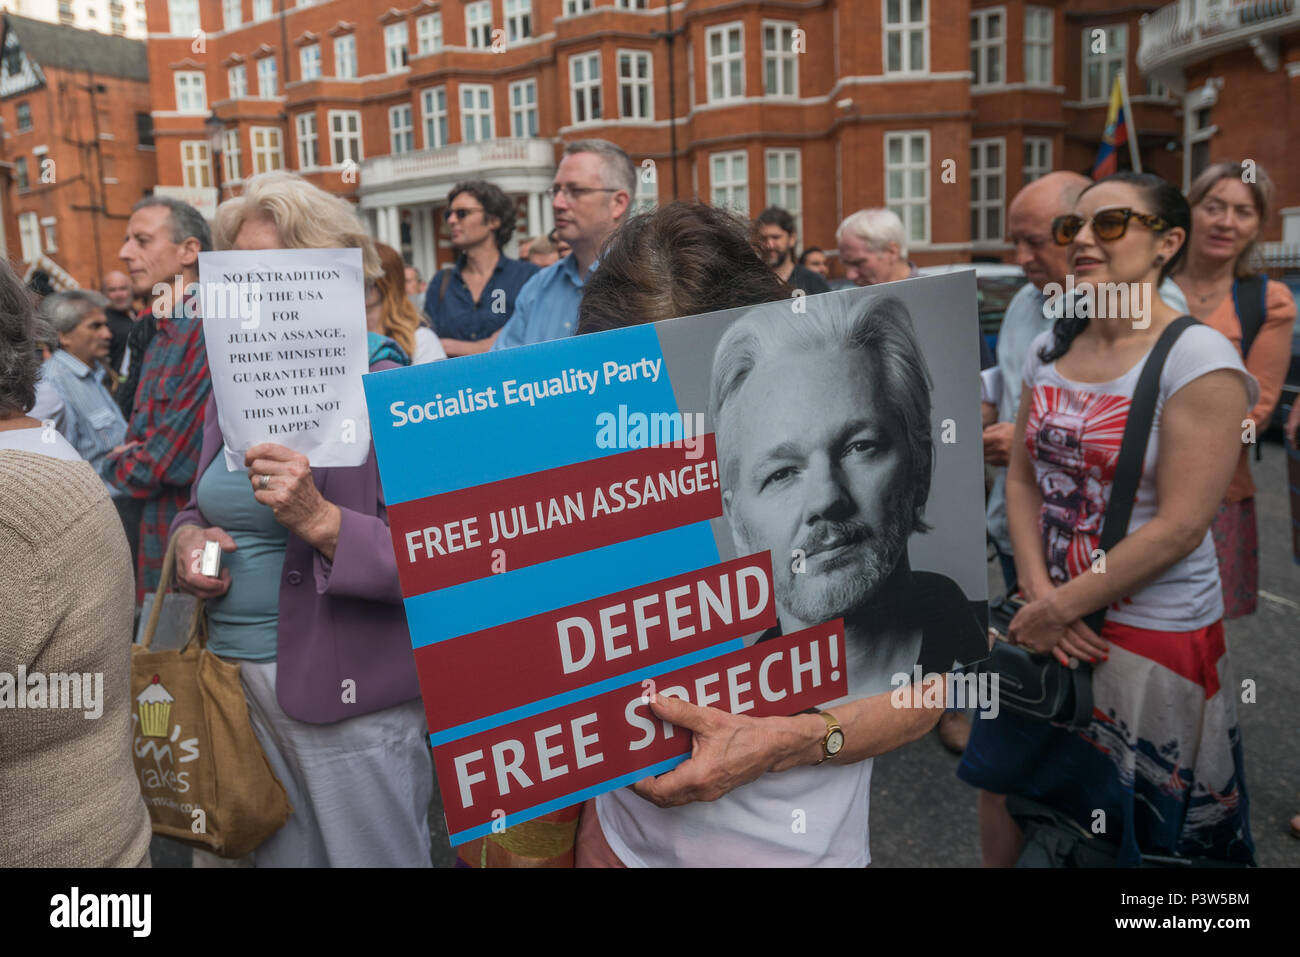 London, UK. 19th June 2018. People with posters at the rally outside the Ecuadorian Embassy in London calling for Julian Assange to be allowed safe passage to the place of his choice to mark six years since he was given asylum there. They called for the UK authorities to allow him to leave the embassy and go to the country of his choice without being arrested. Credit: Peter Marshall/Alamy Live News - Stock Image